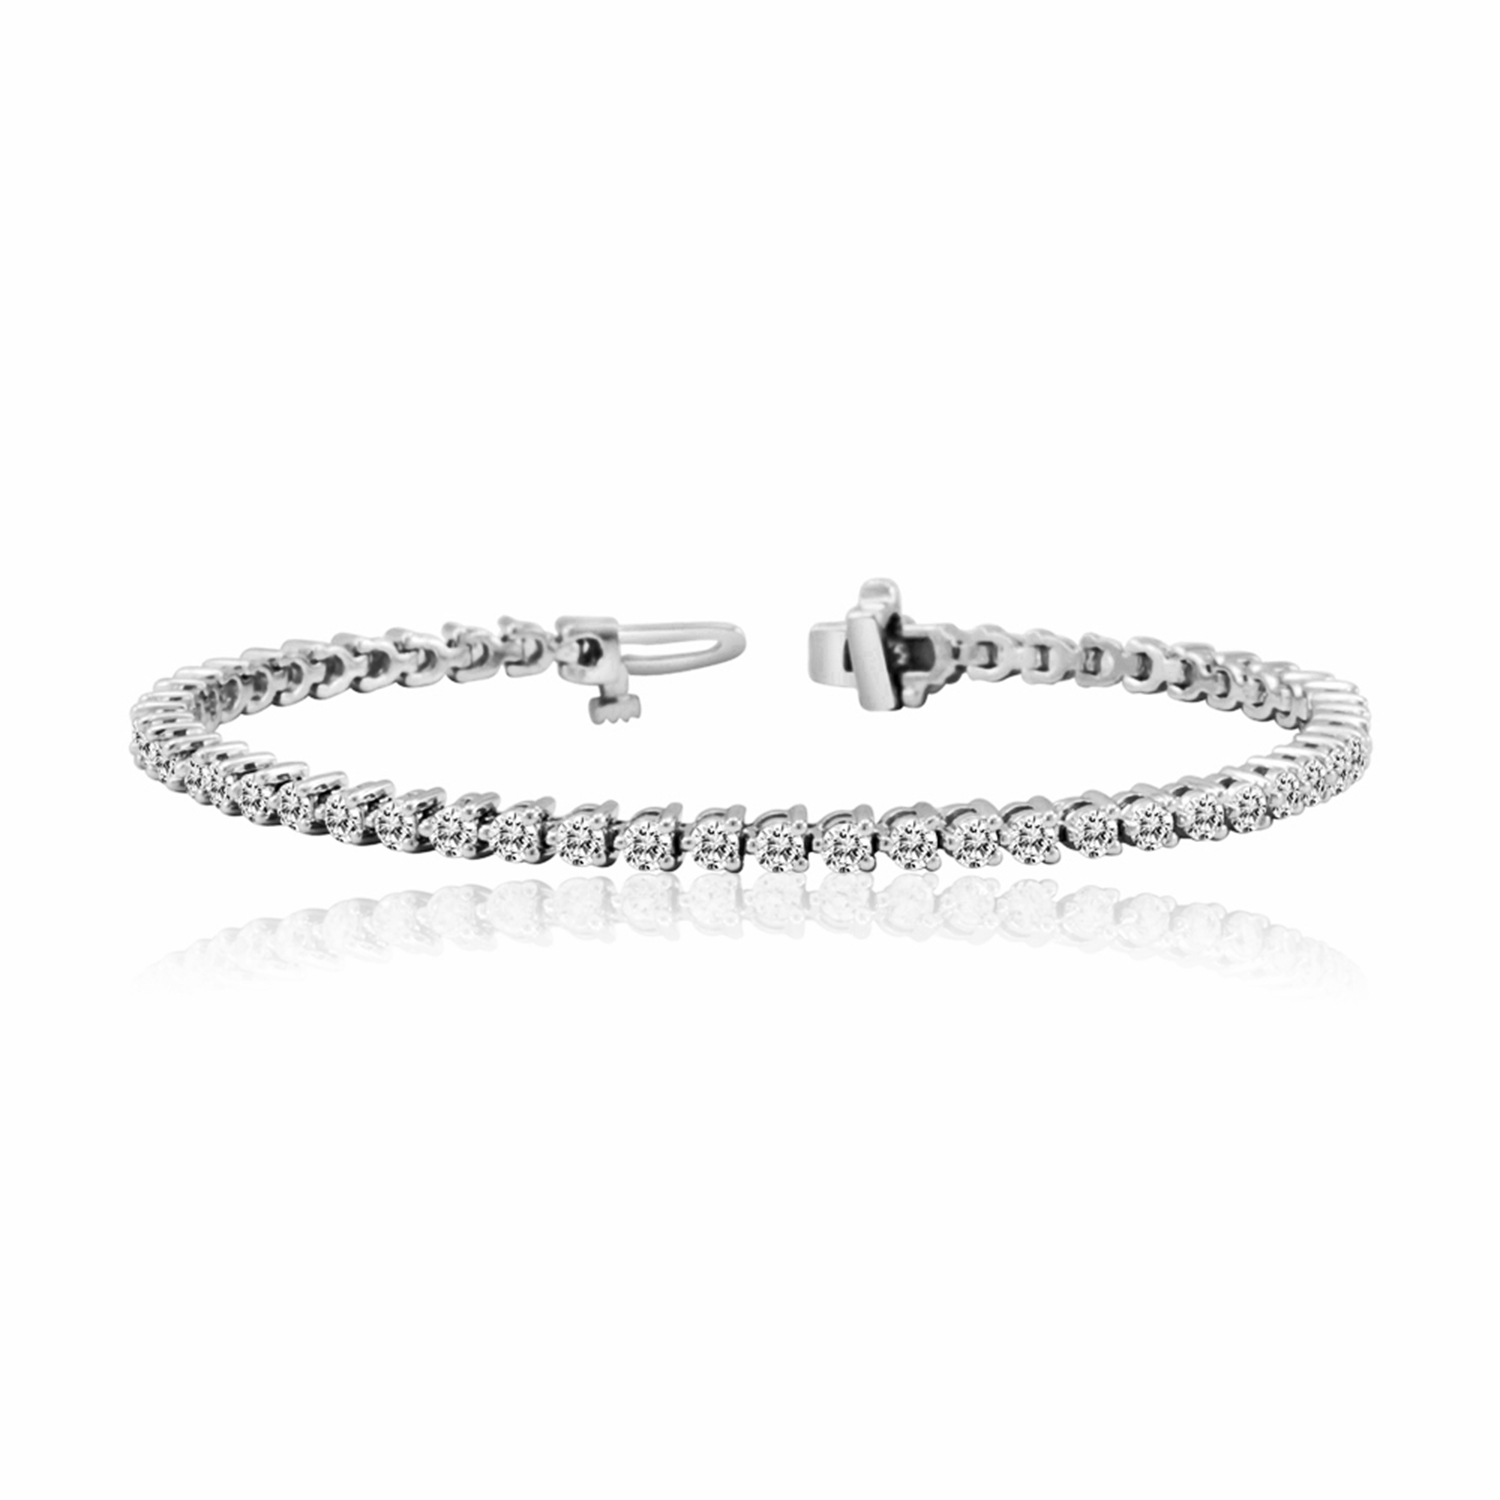 Certified 14k White Gold 3-Prong Round Diamond Tennis Bracelet 3.00 ct. tw. (I-J, I1)